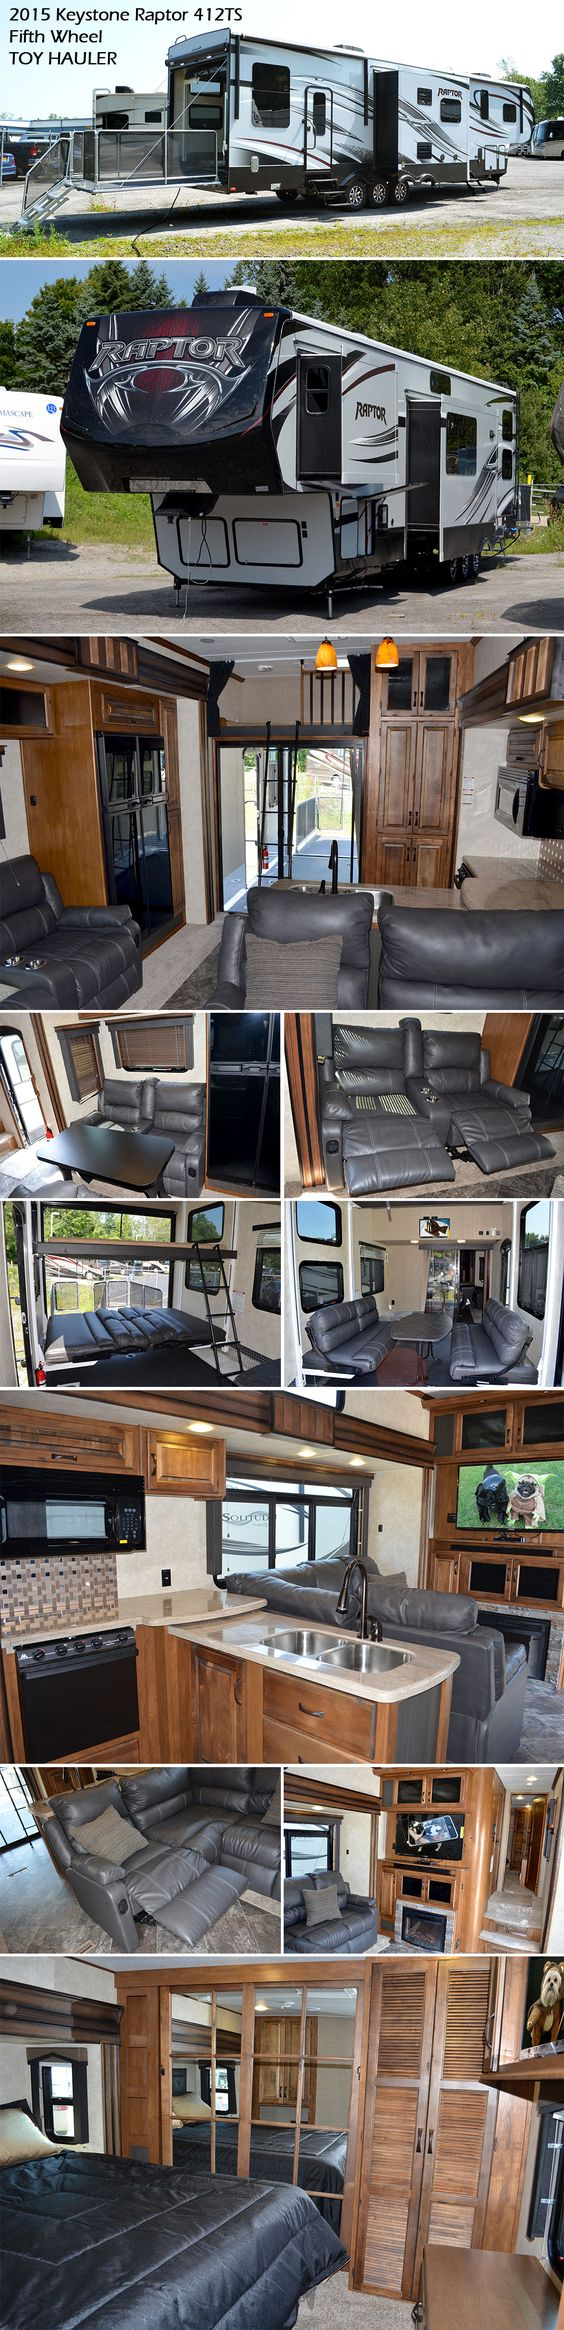 You will have no problem traveling with your favorite toys in this 2015 Keystone Raptor 412TS fifth wheel TOY HAULER. There is a side man door in the garage for easy access, a twin loft bed above the garage that the kids will surely love, and an electric bed with dual opposing sofas in the rear for more sleeping space at night and lounging during the day. The main living area has an L-shaped hide-a-bed with recliner combined. On the opposite wall is more seating with a dual recliner.